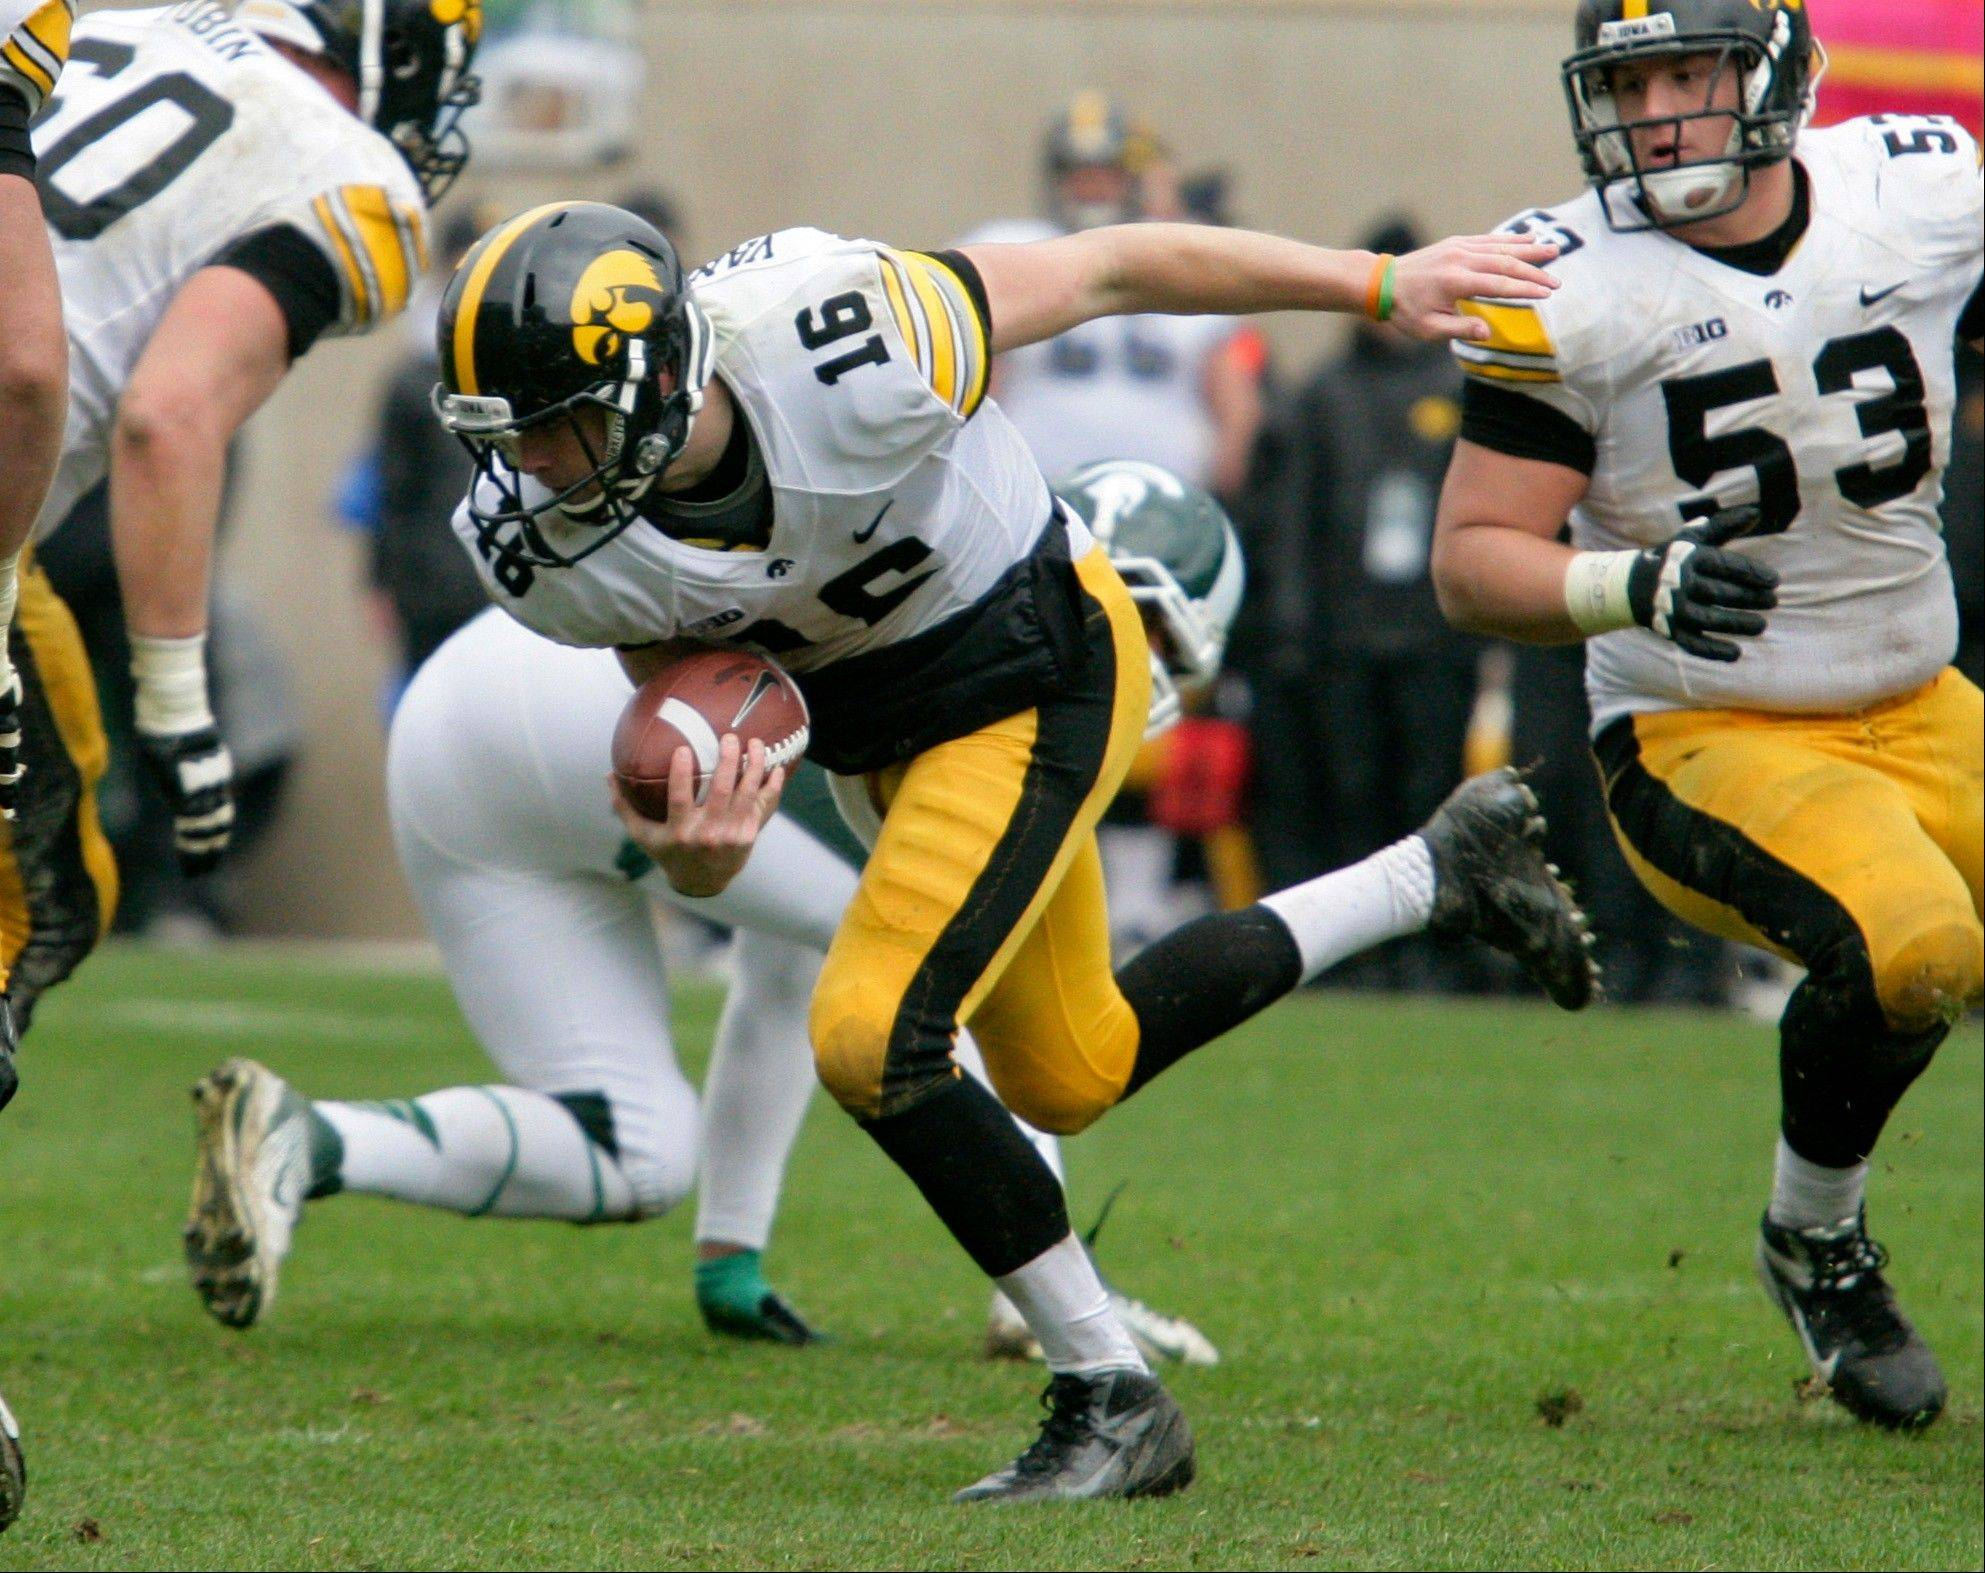 Iowa quarterback James Vandenberg scrambles between Matt Tobin, left, and James Ferentz (53) Saturday during the third quarter against Michigan State in East Lansing, Mich. Iowa won 19-16 in double overtime.